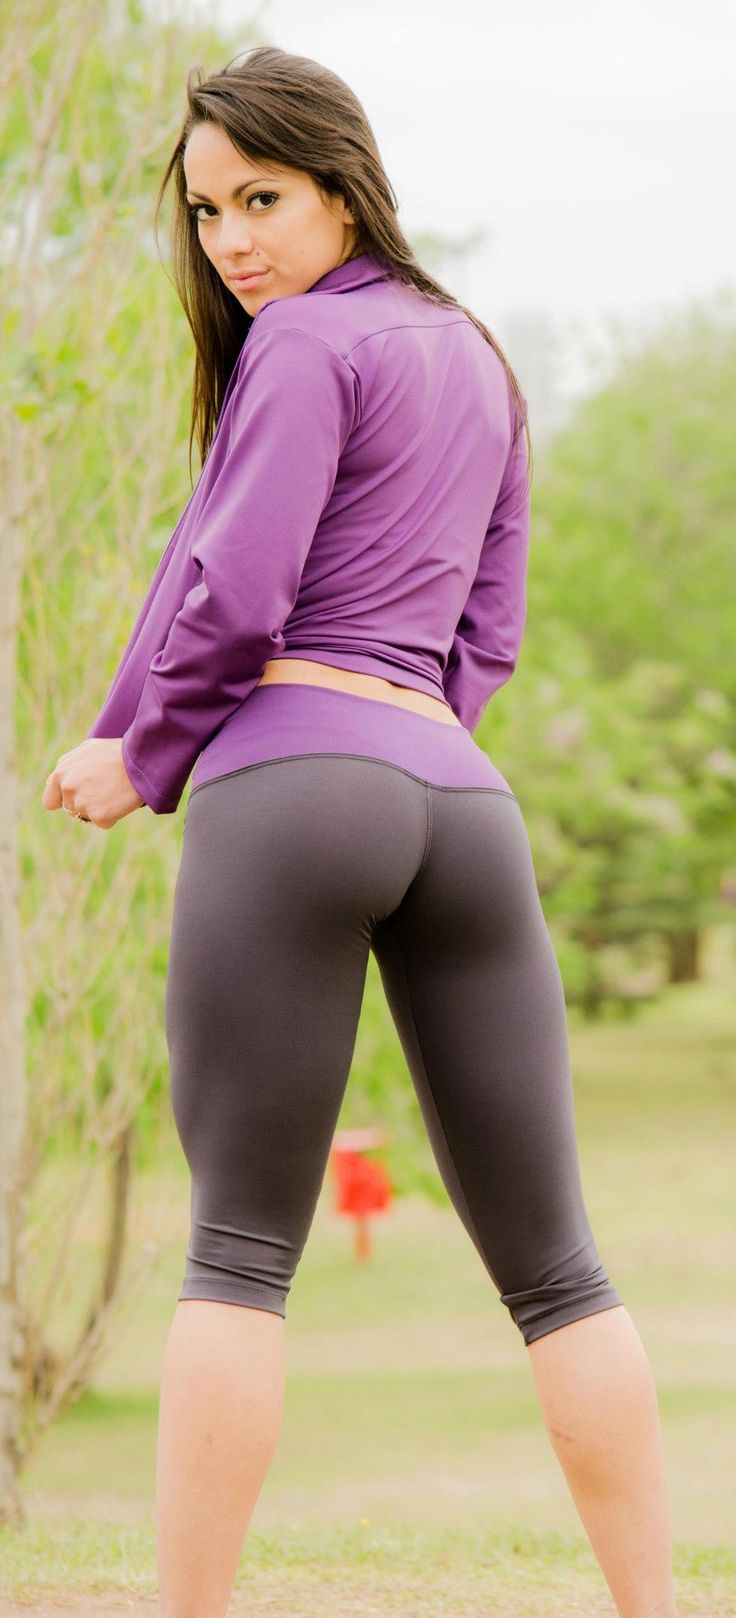 Yoga Pants Naked 121